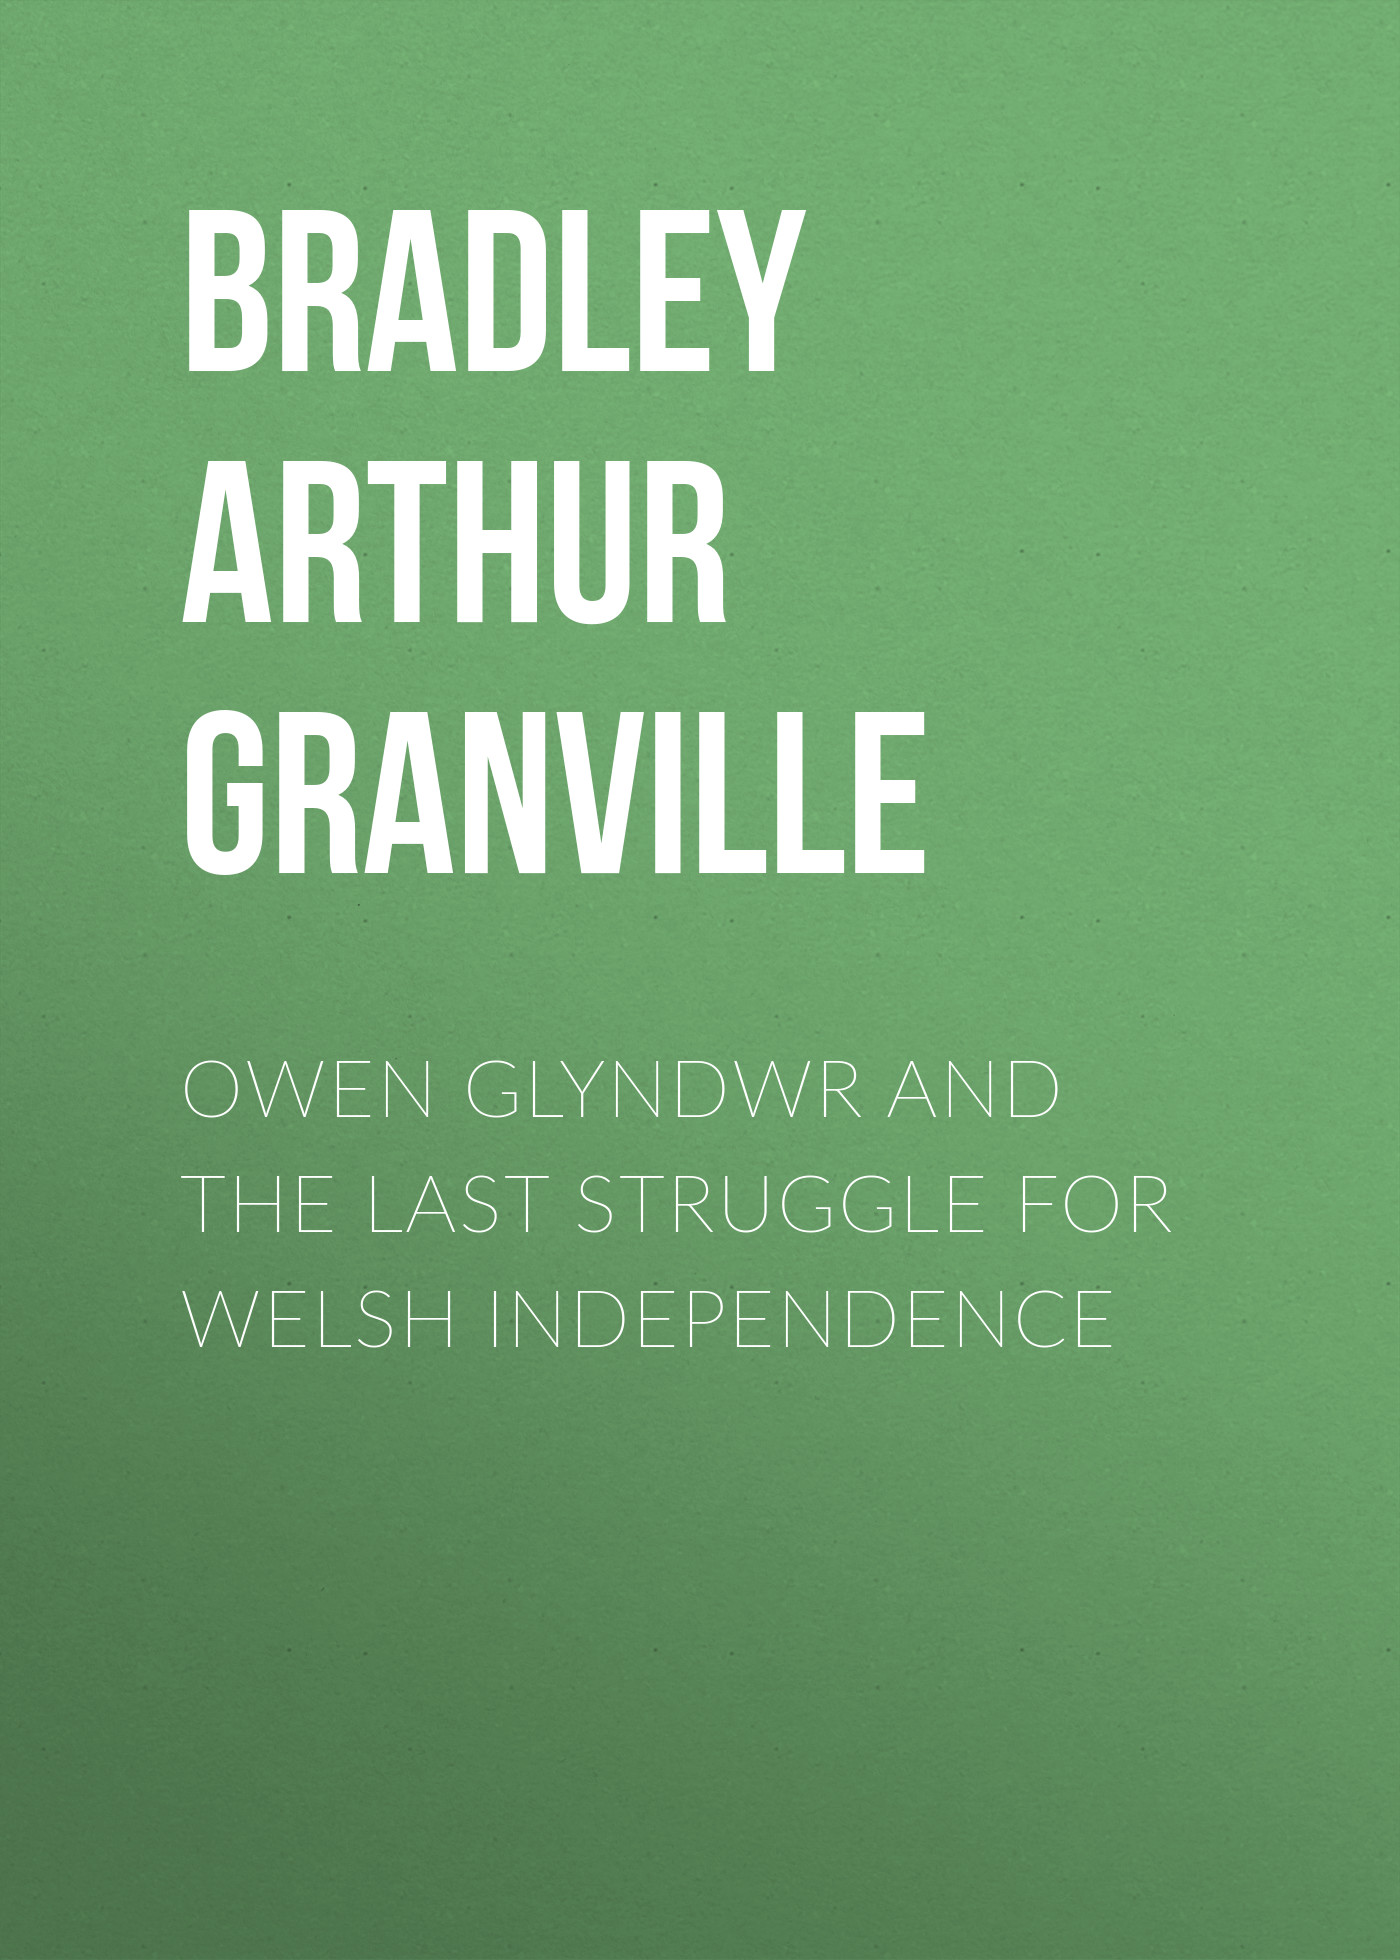 Bradley Arthur Granville Owen Glyndwr and the Last Struggle for Welsh Independence independence day equador gifts